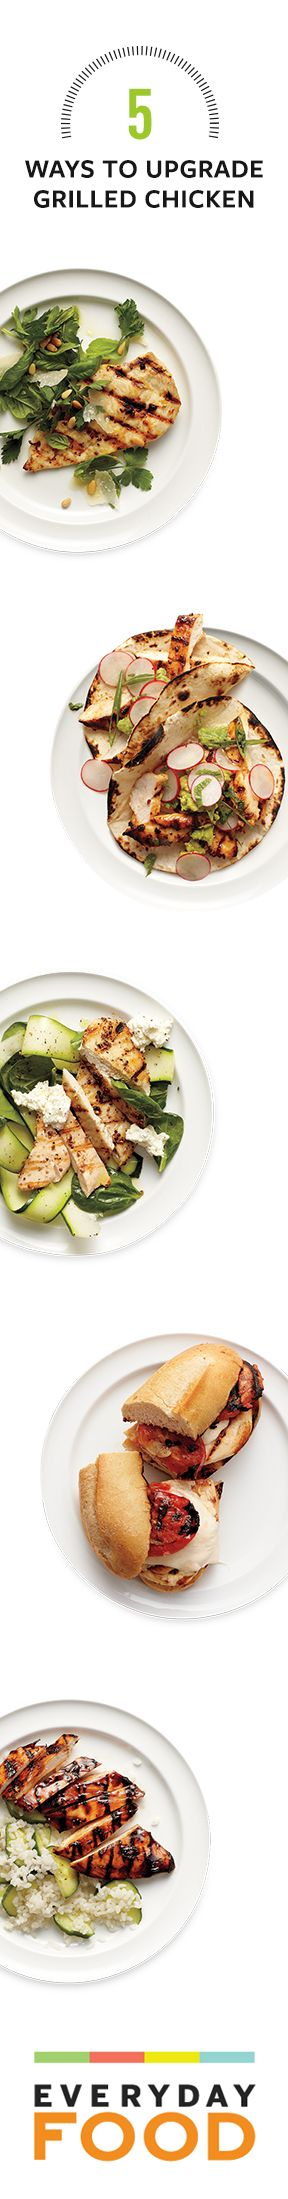 5 simple ways to upgrade grilled chicken from @Alice Cartee Cartee Food